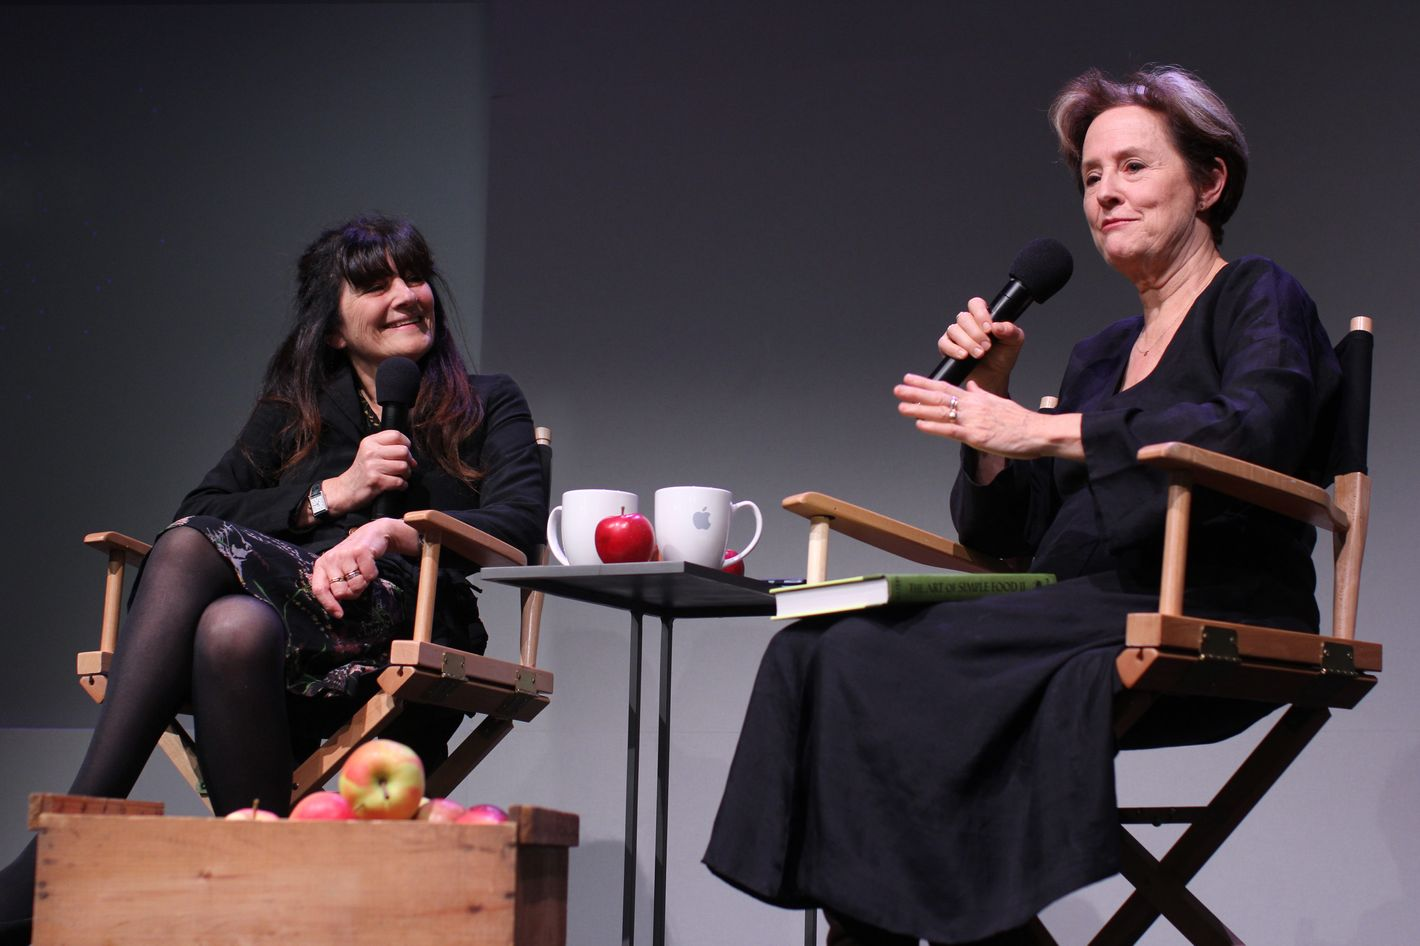 Of course Alice Waters brought Greenmarket apples to her Apple store event.